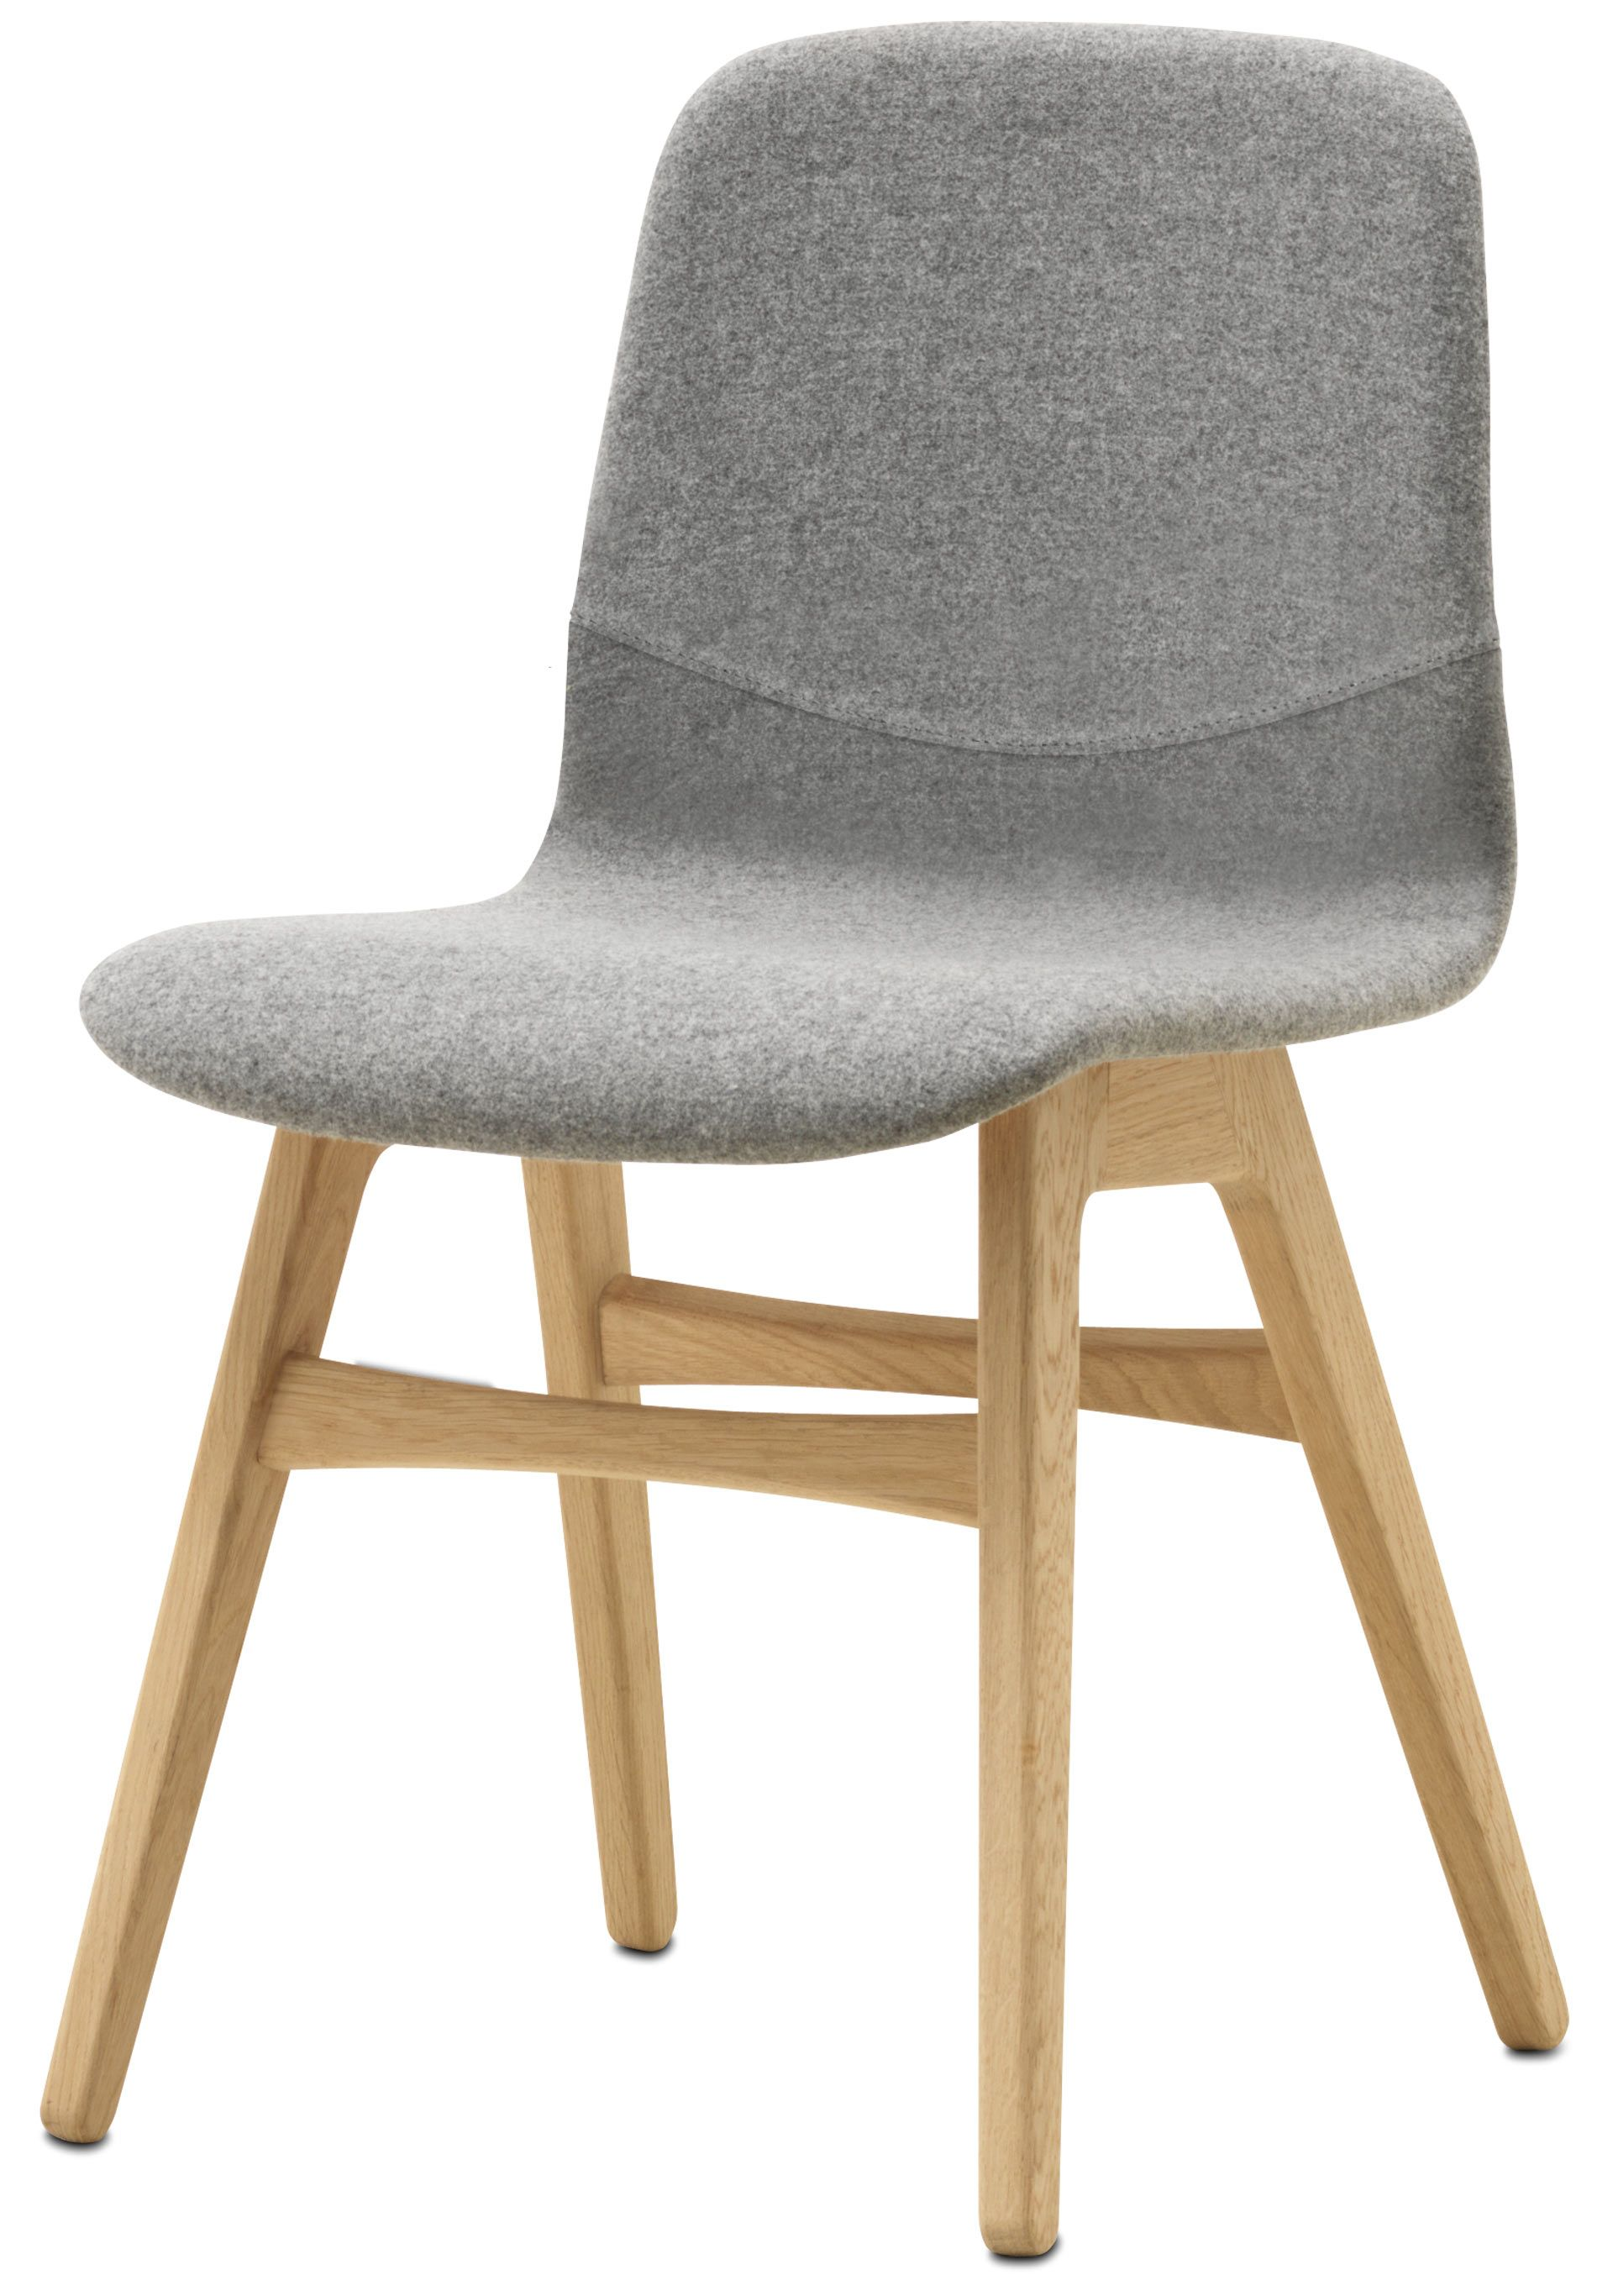 Modern Dining Chairs, Designer Dining Chairs BoConcept